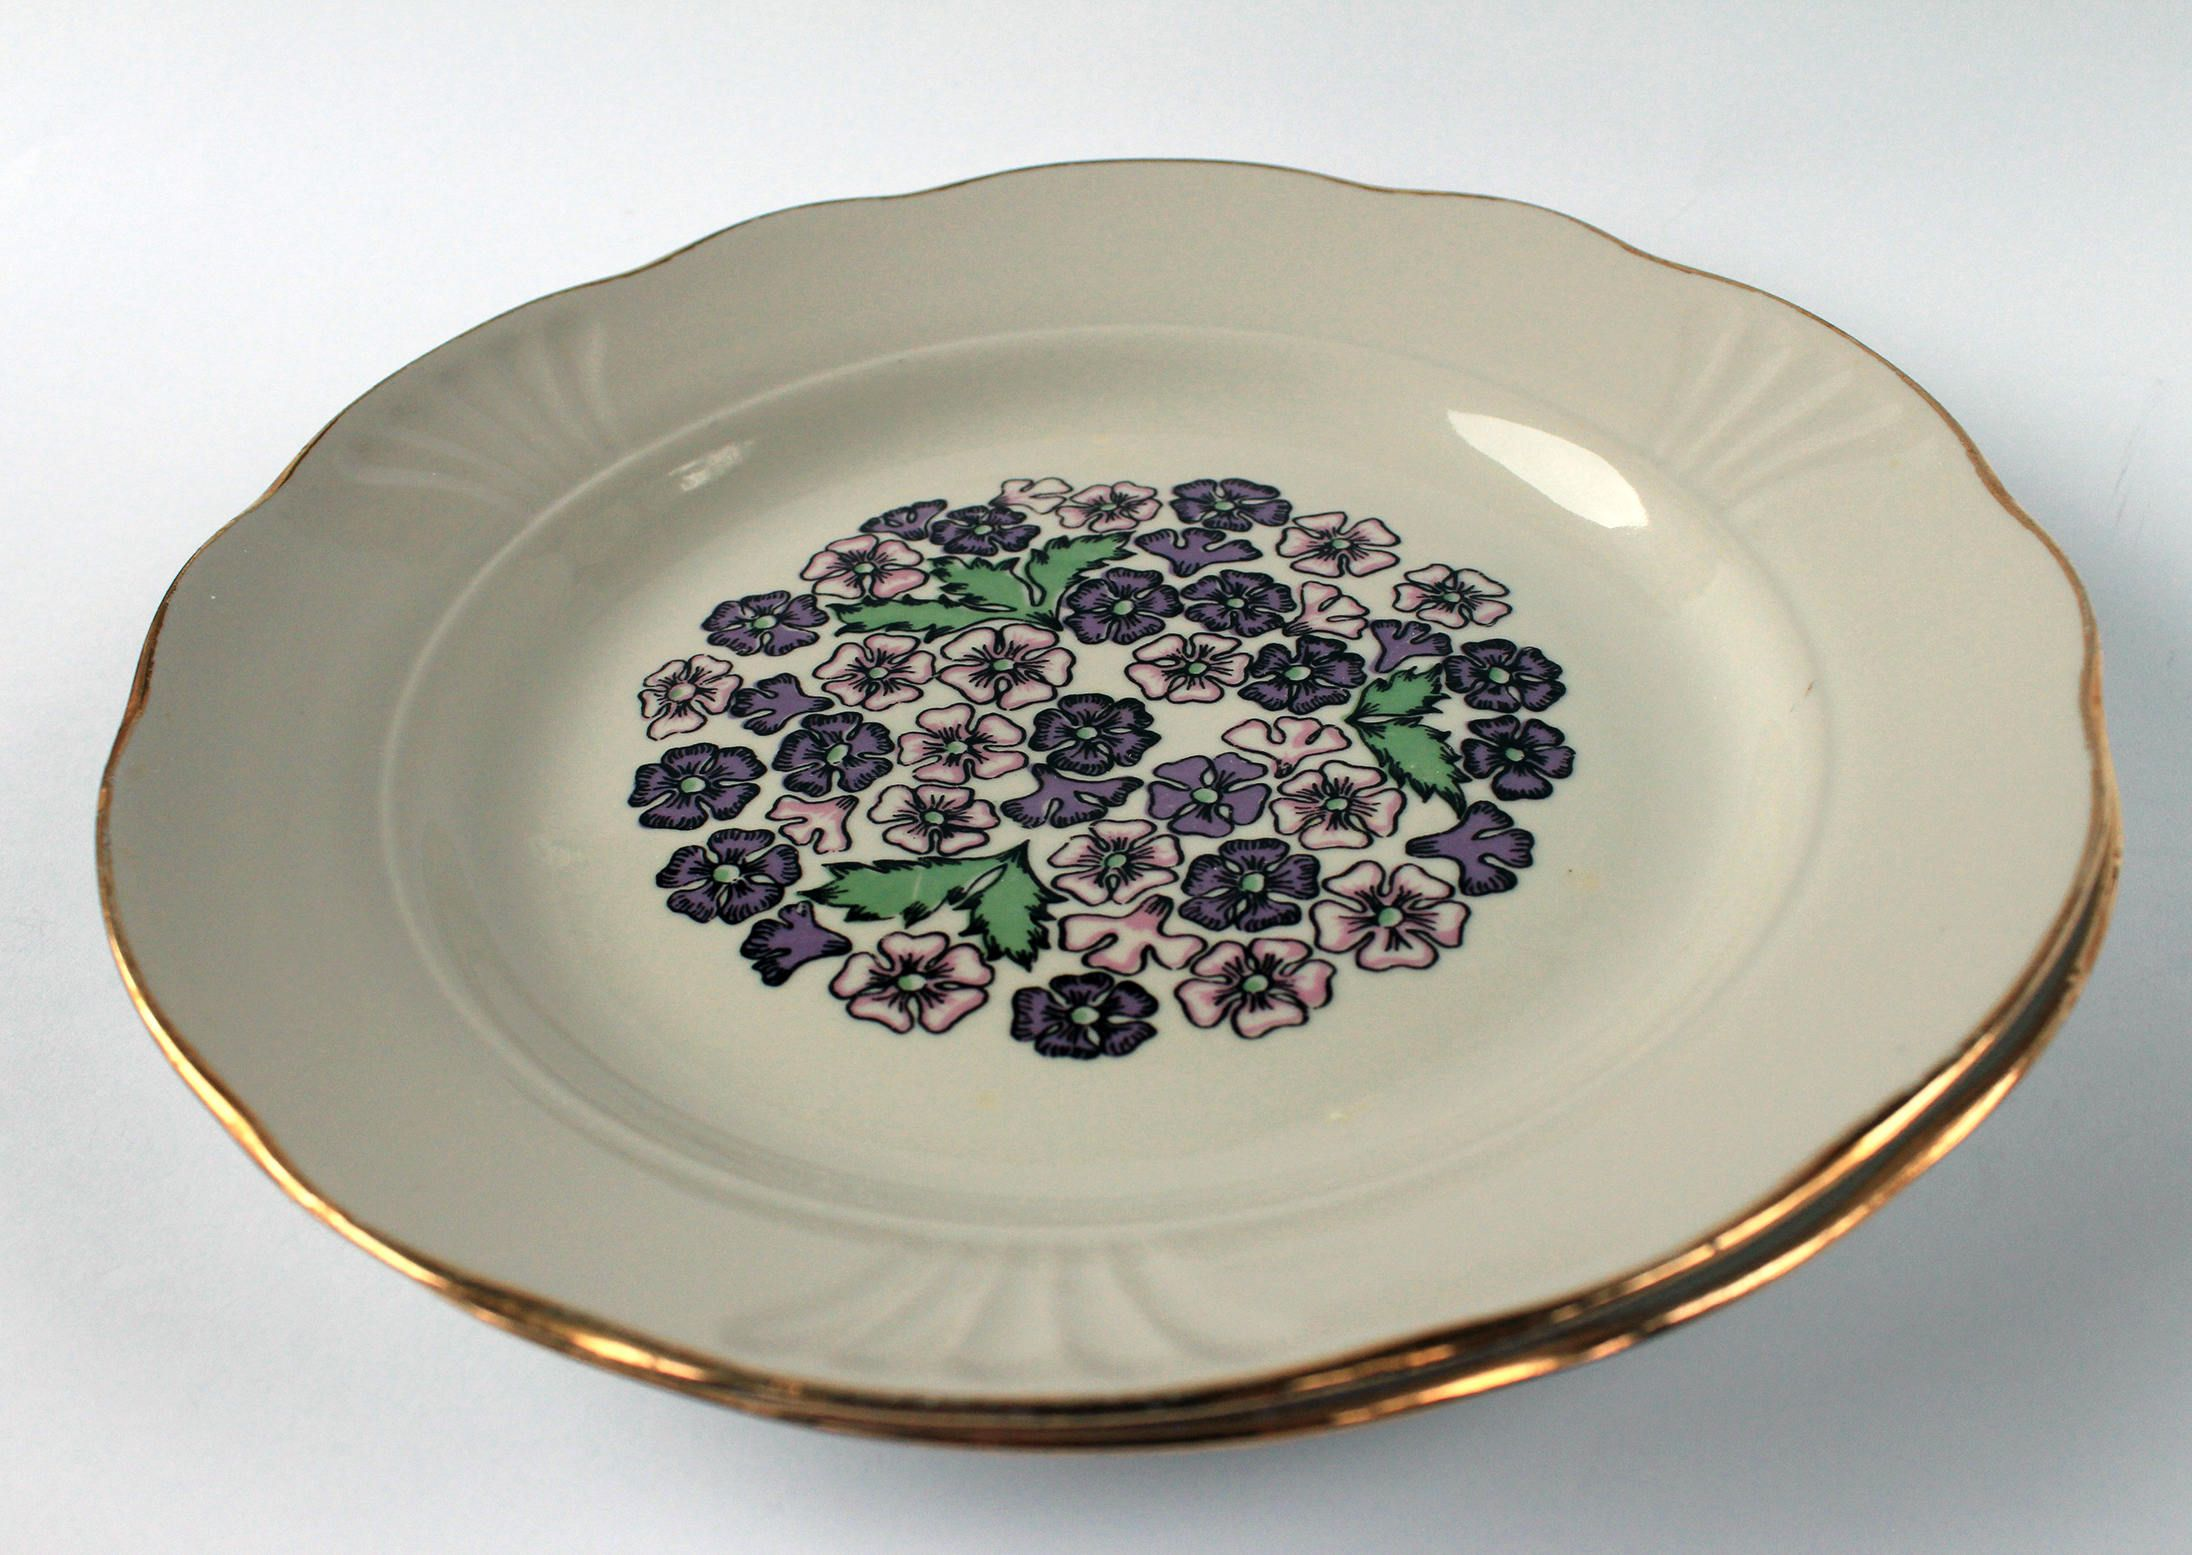 Large Decorative Ceramic Plates Large Ceramic Plate With Purple Flowers Decor Off White With